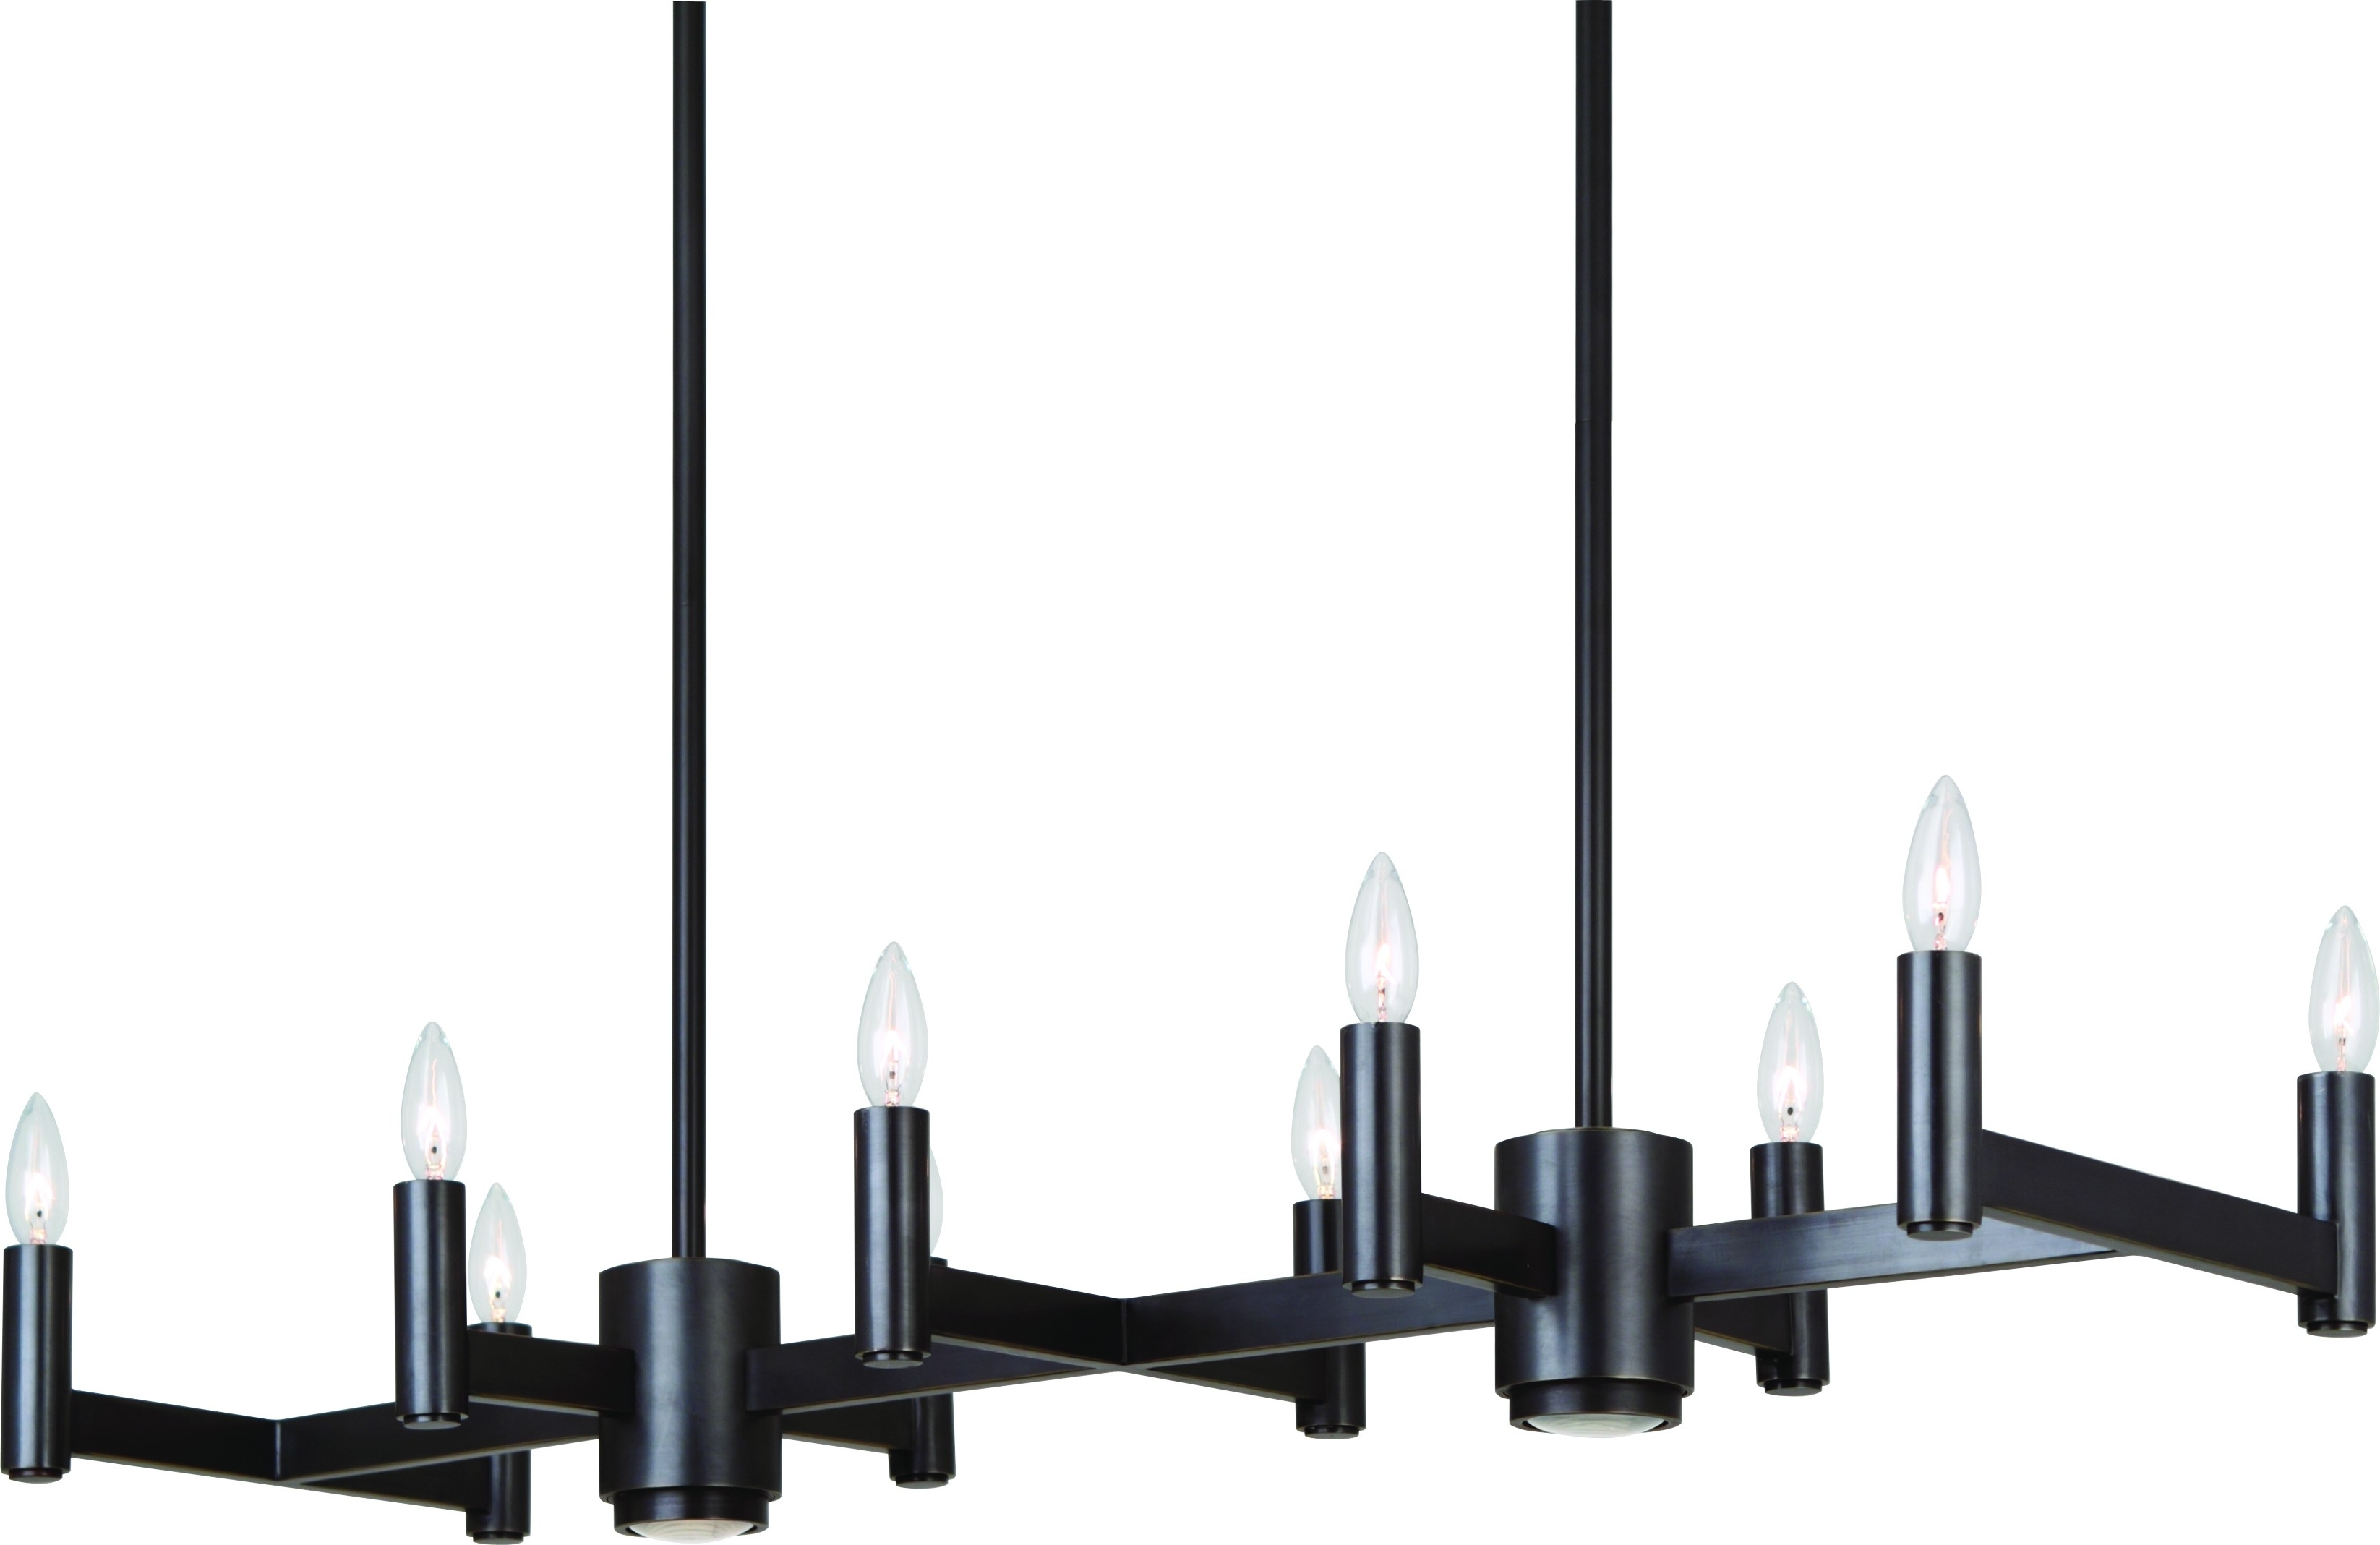 Modern Black Chandelier Pertaining To Fashionable Hanging Rectangular Modern Black Wrought Iron Chandeliers With Lamp (Gallery 11 of 20)